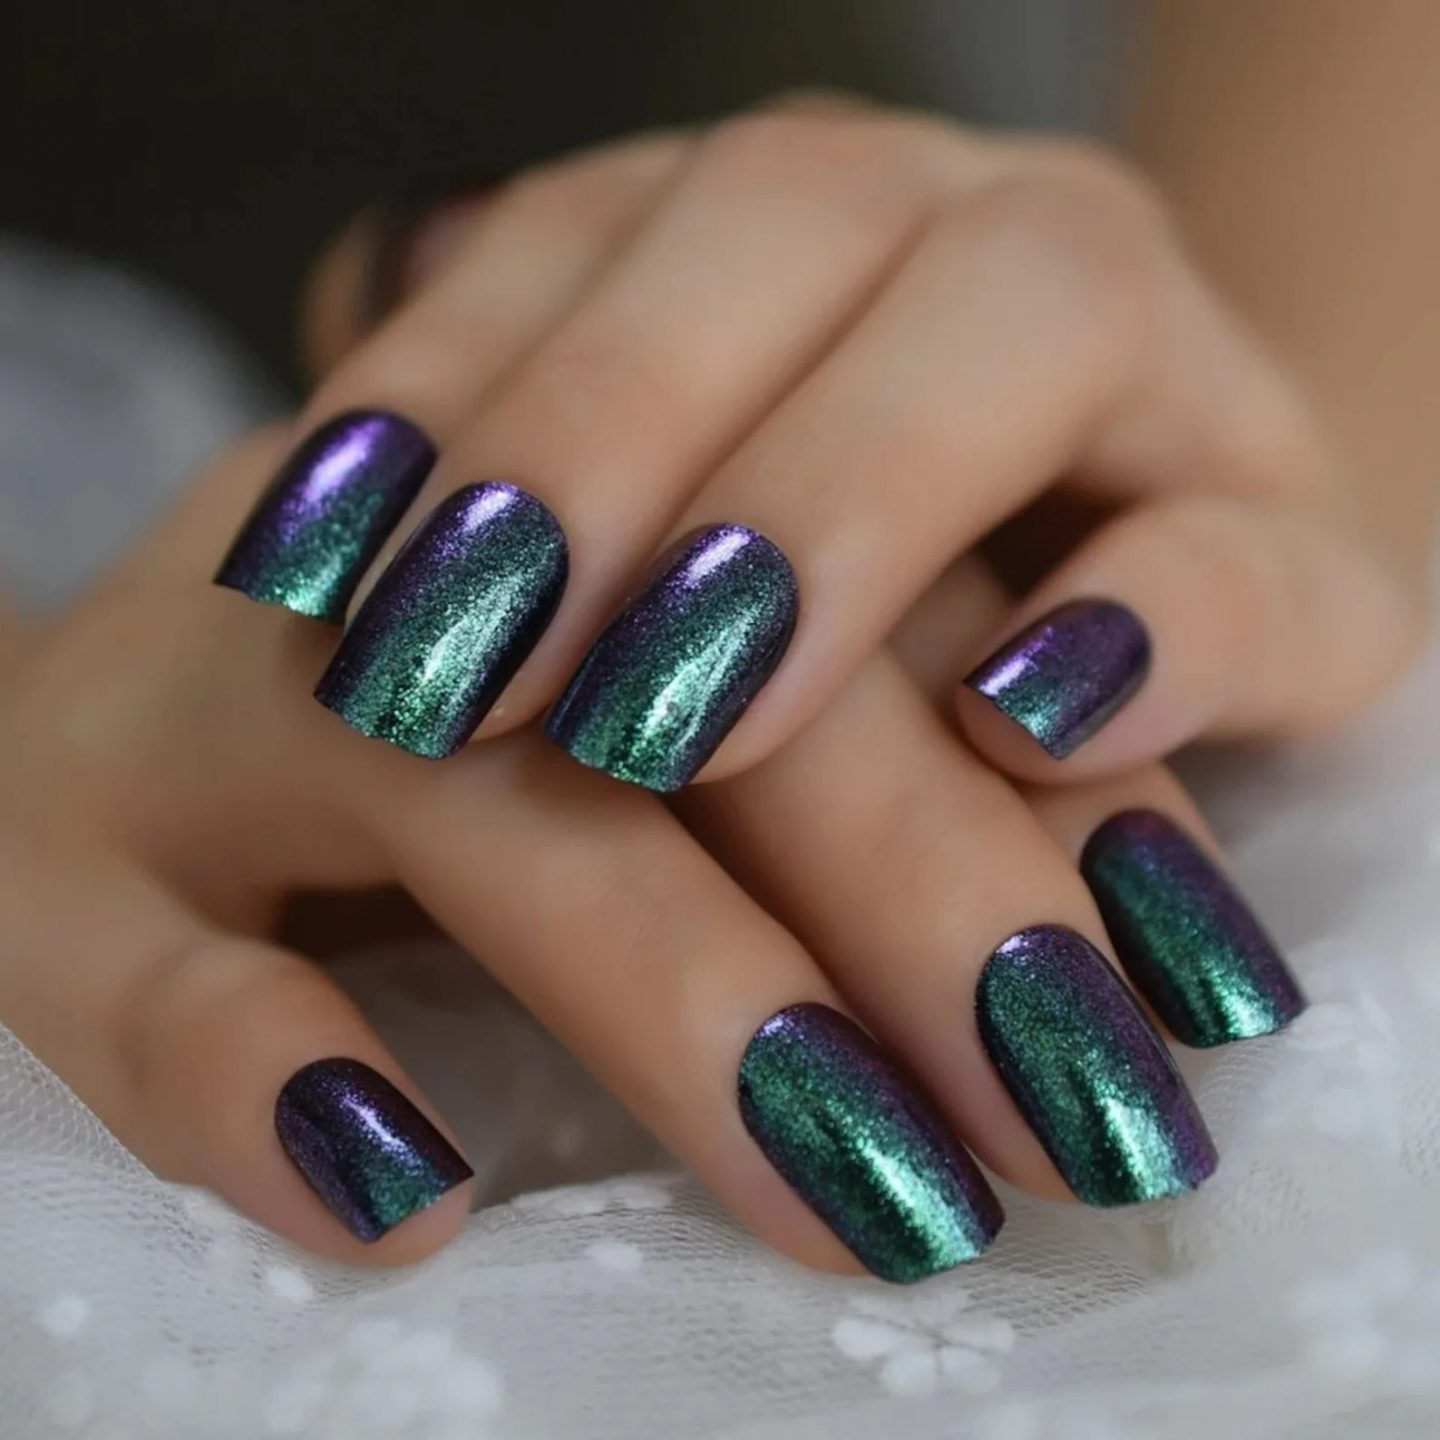 Short green and purple chrome nails with glitter